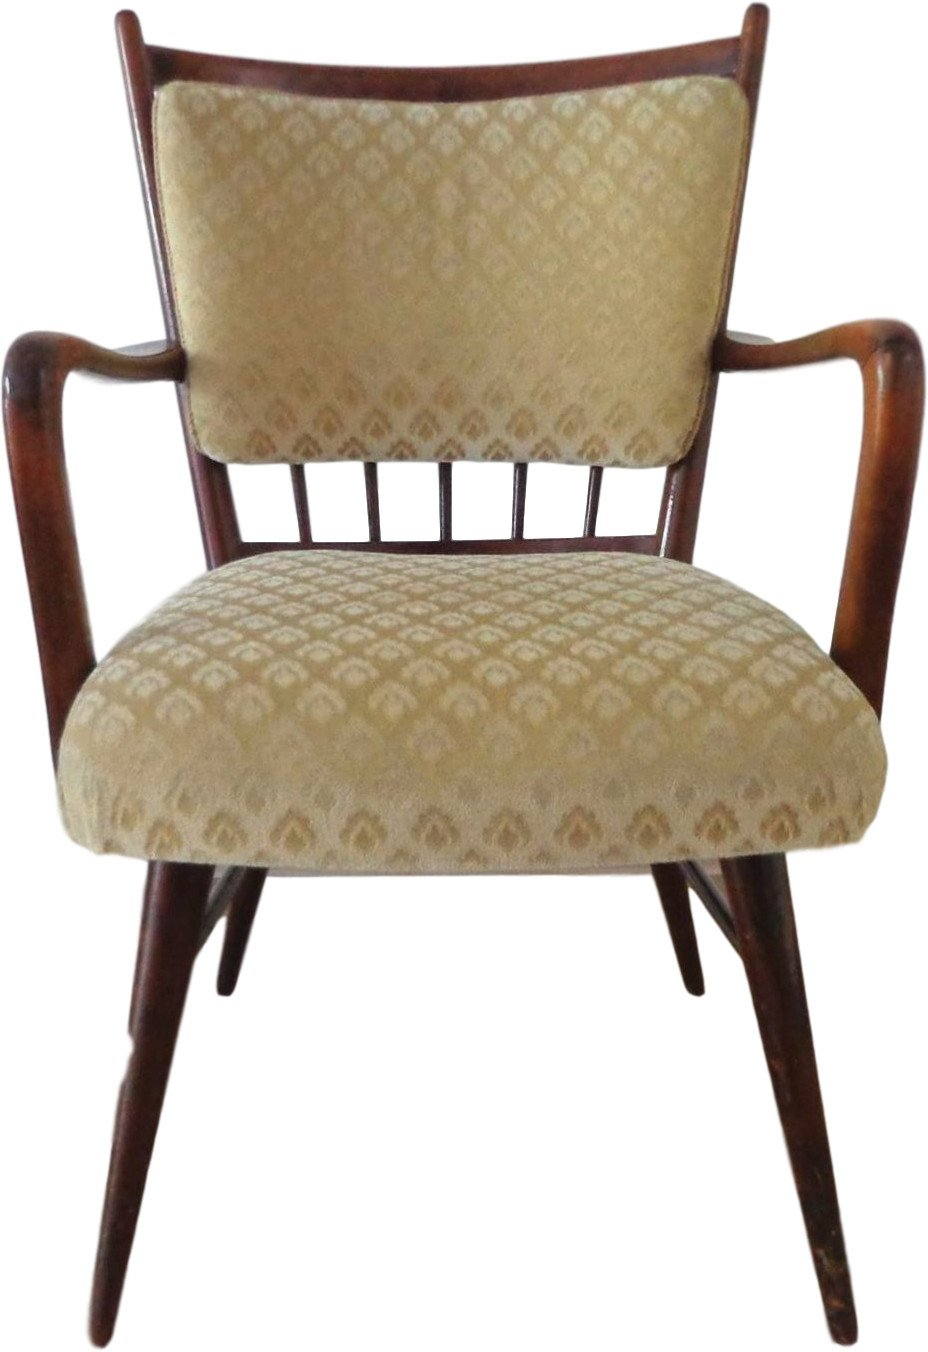 Chair, Casala, Germany, 1950s